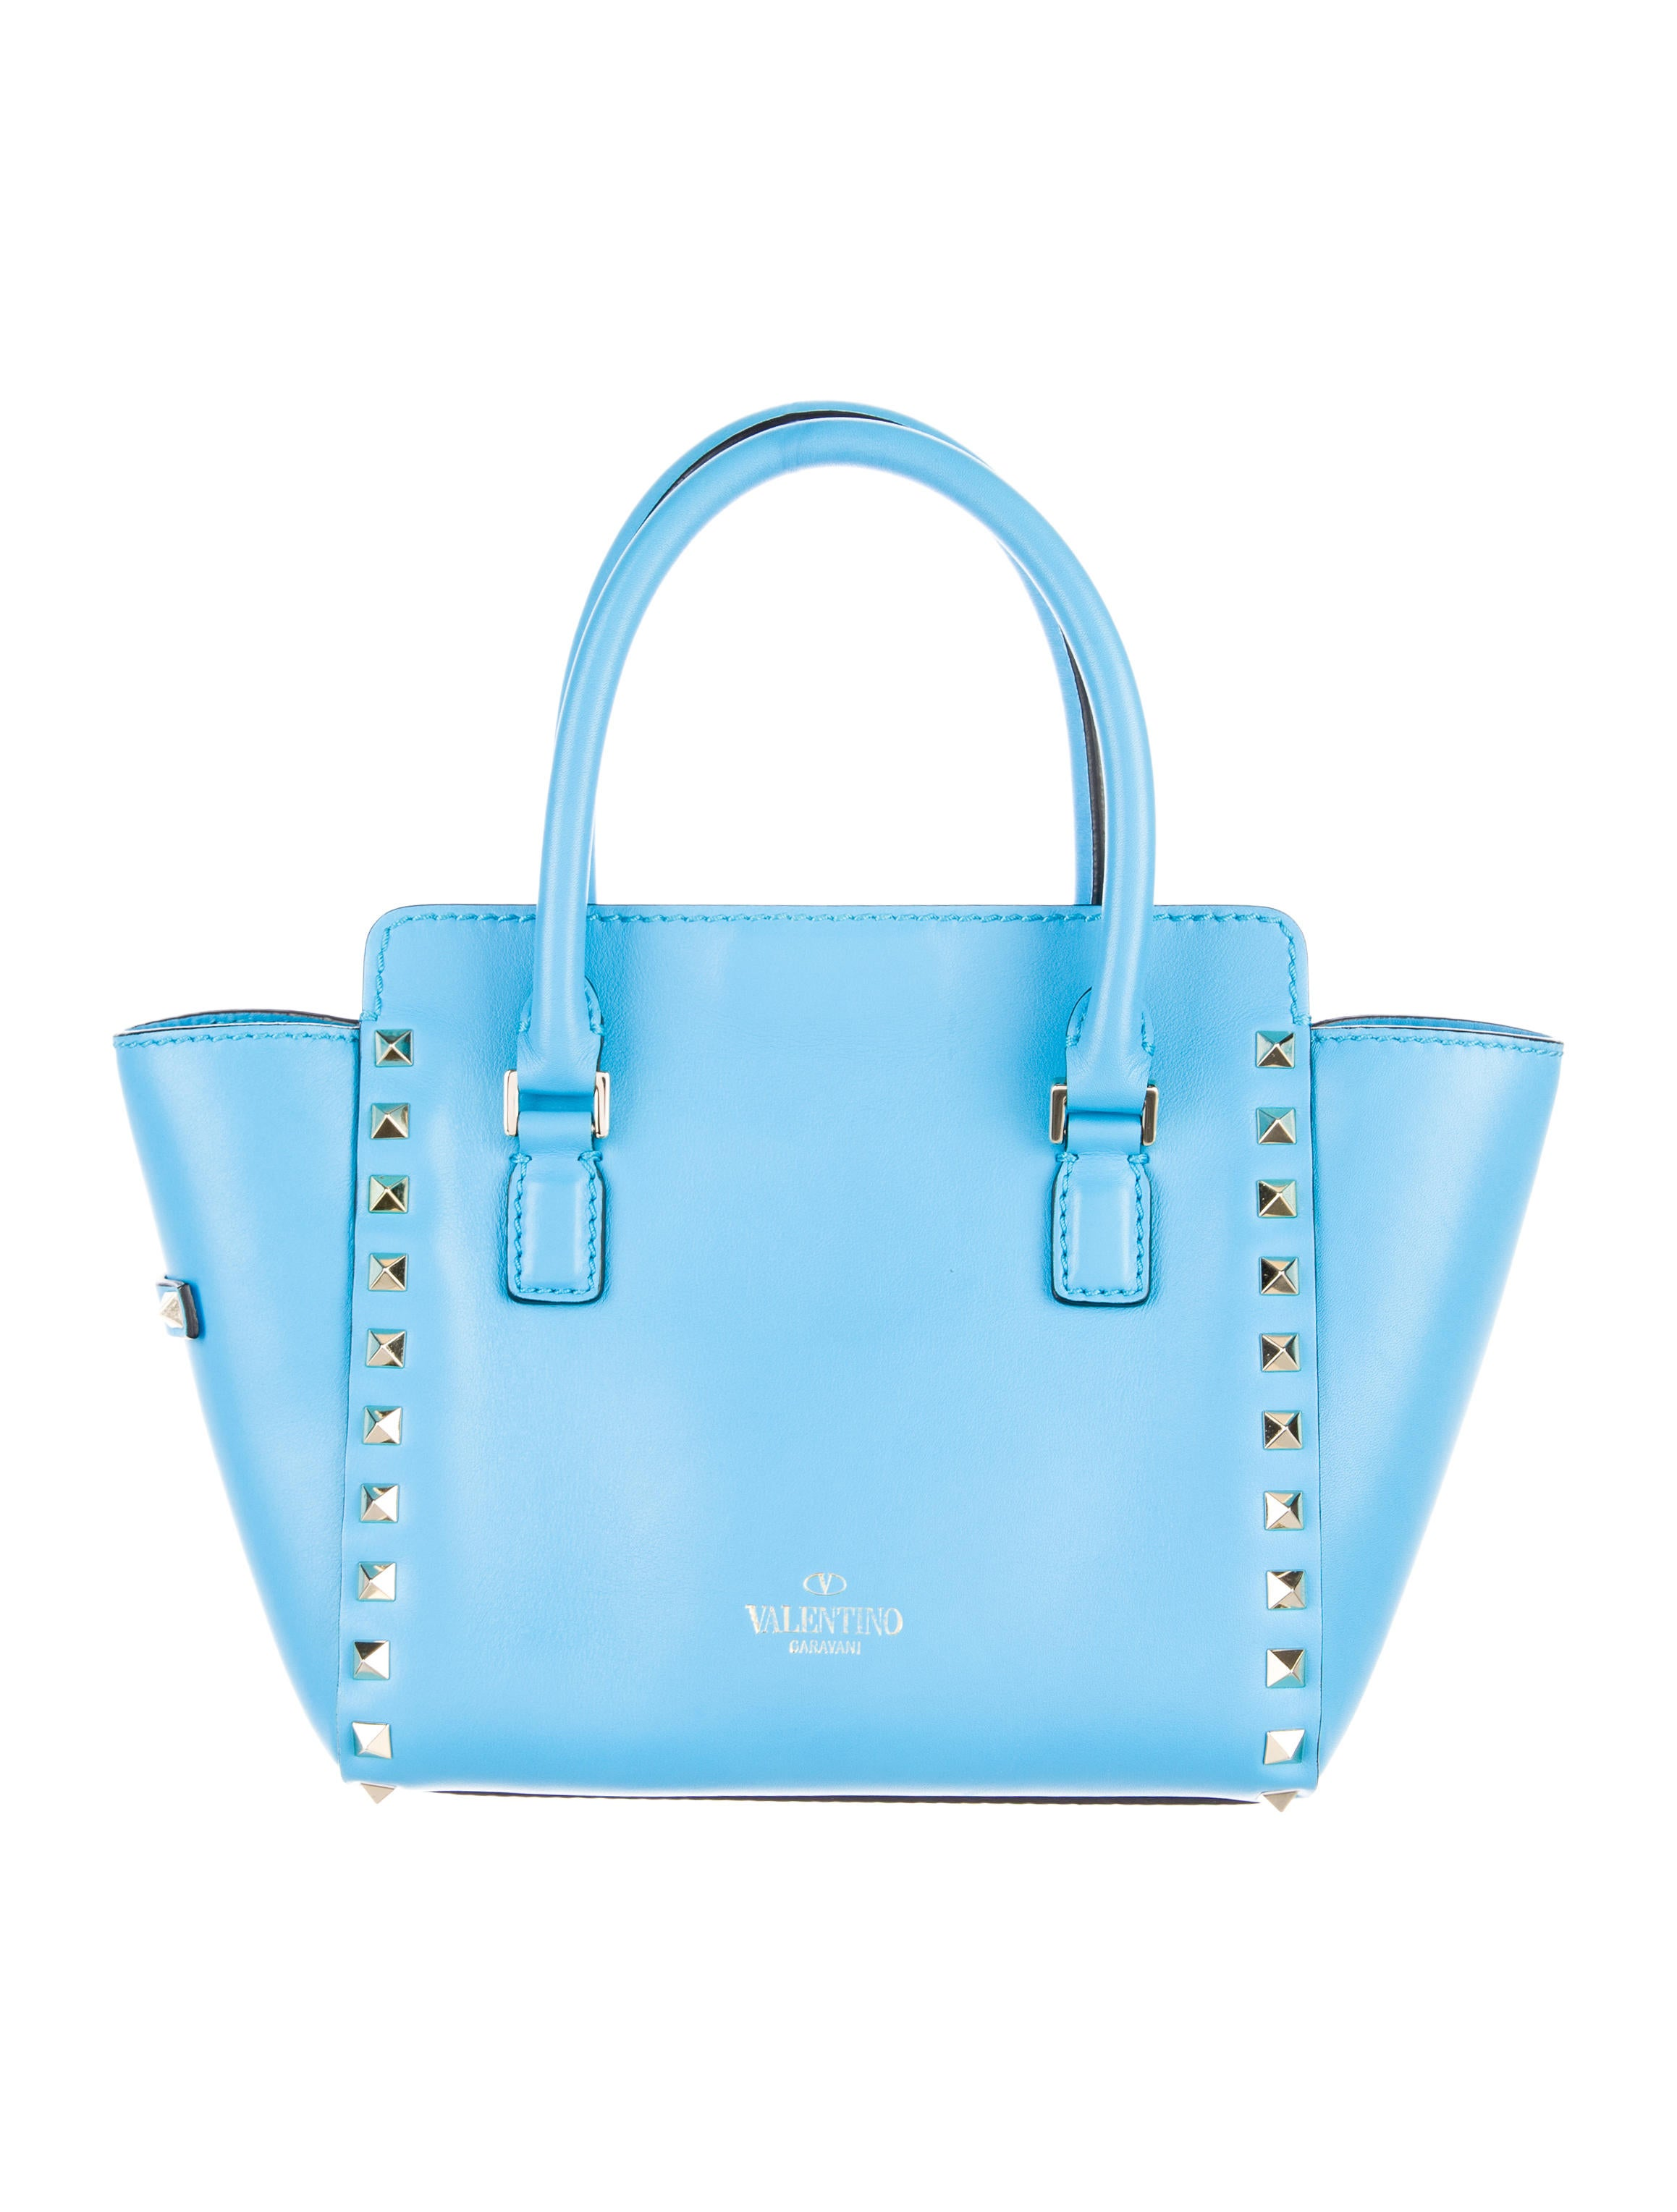 Valentino Mini Rockstud Double Handle Tote - Handbags - VAL65949 : The RealReal